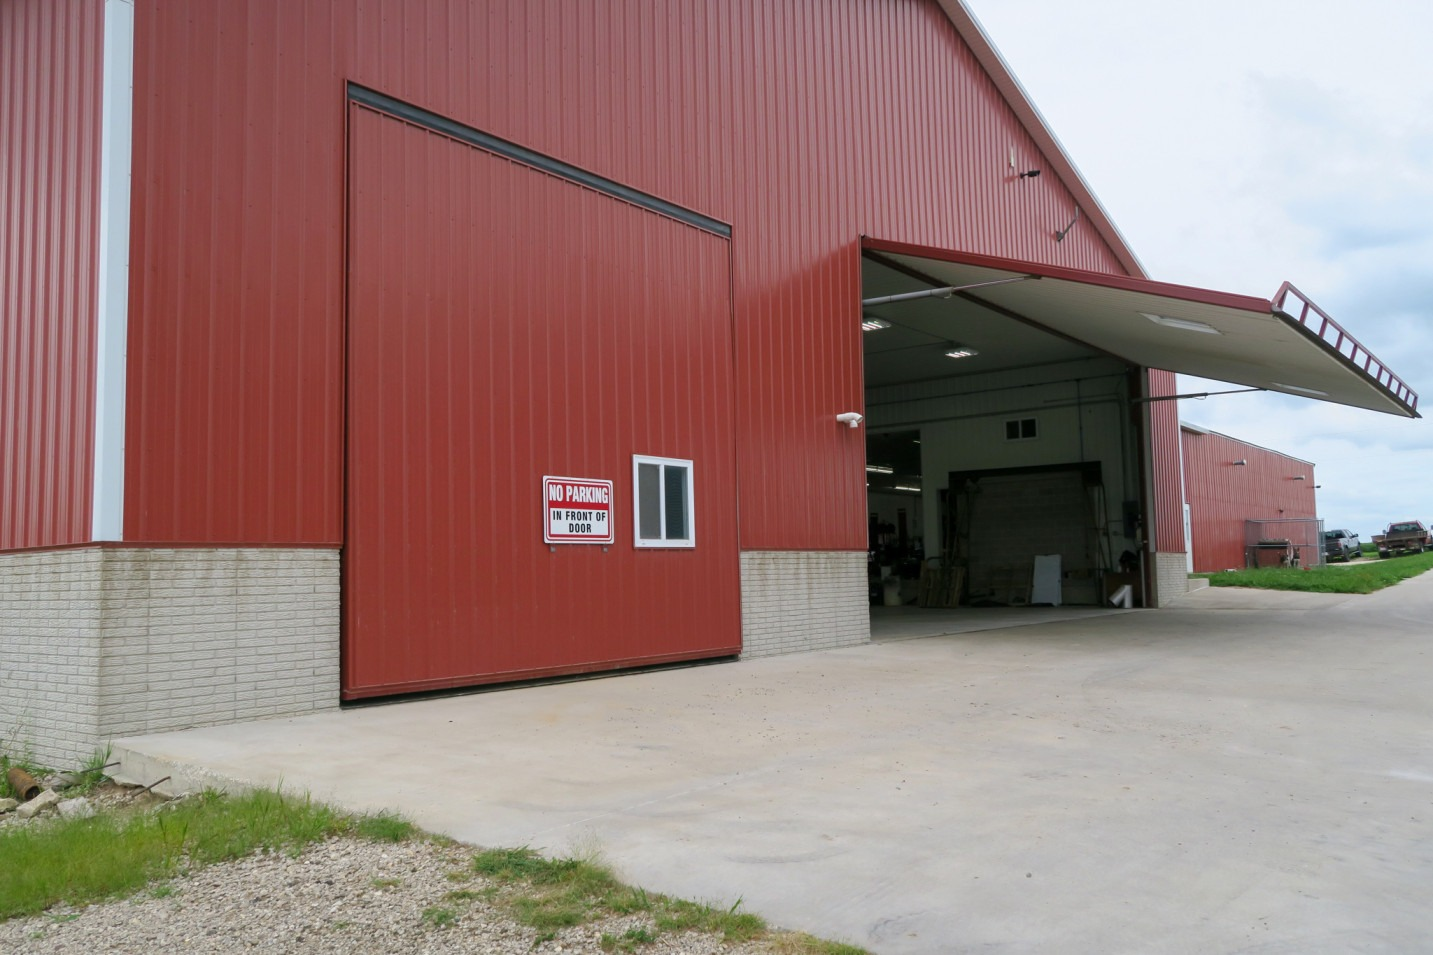 Farm With Four PowerLift Doors